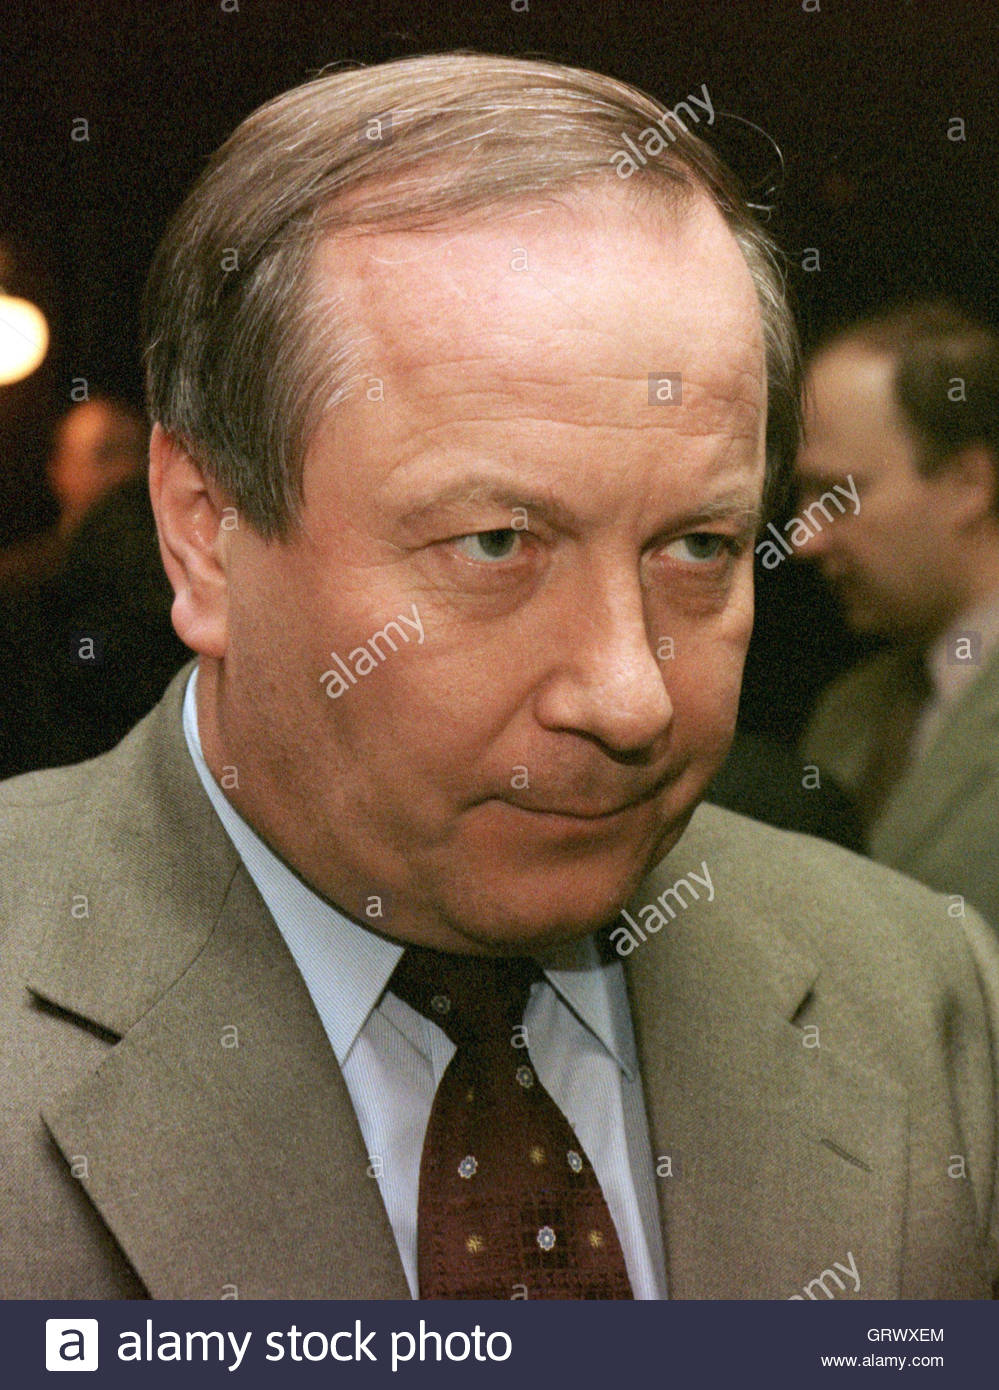 file photo jan russian chief prosecutor yur skuratov has file photo jan98 russian chief prosecutor yur skuratov has tendered his resignation to president